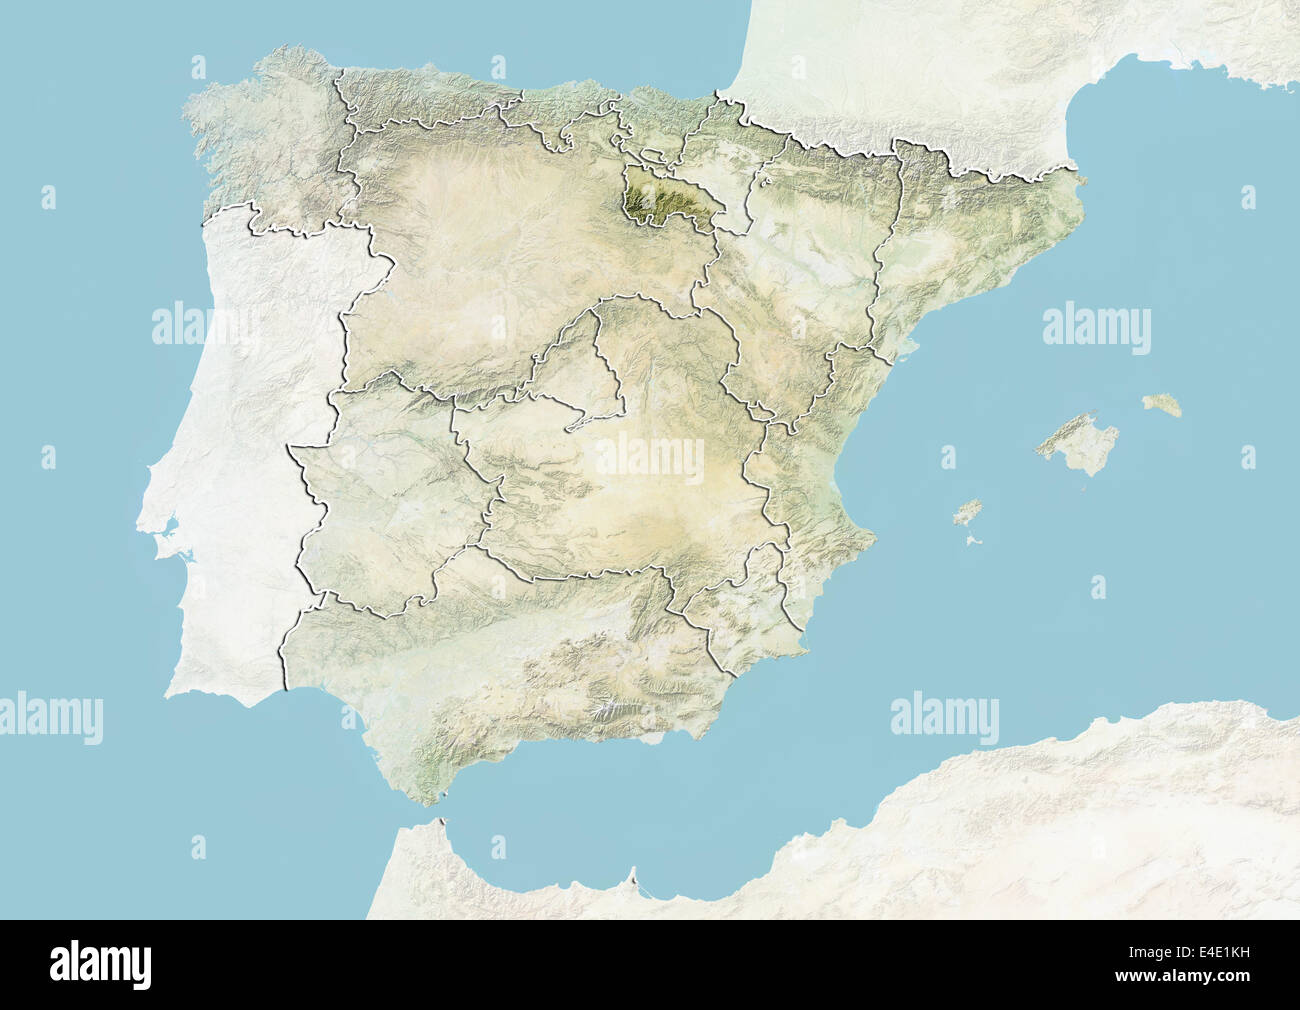 Map Of Spain Rioja.Spain And The Region Of La Rioja Relief Map Stock Photo 71608757